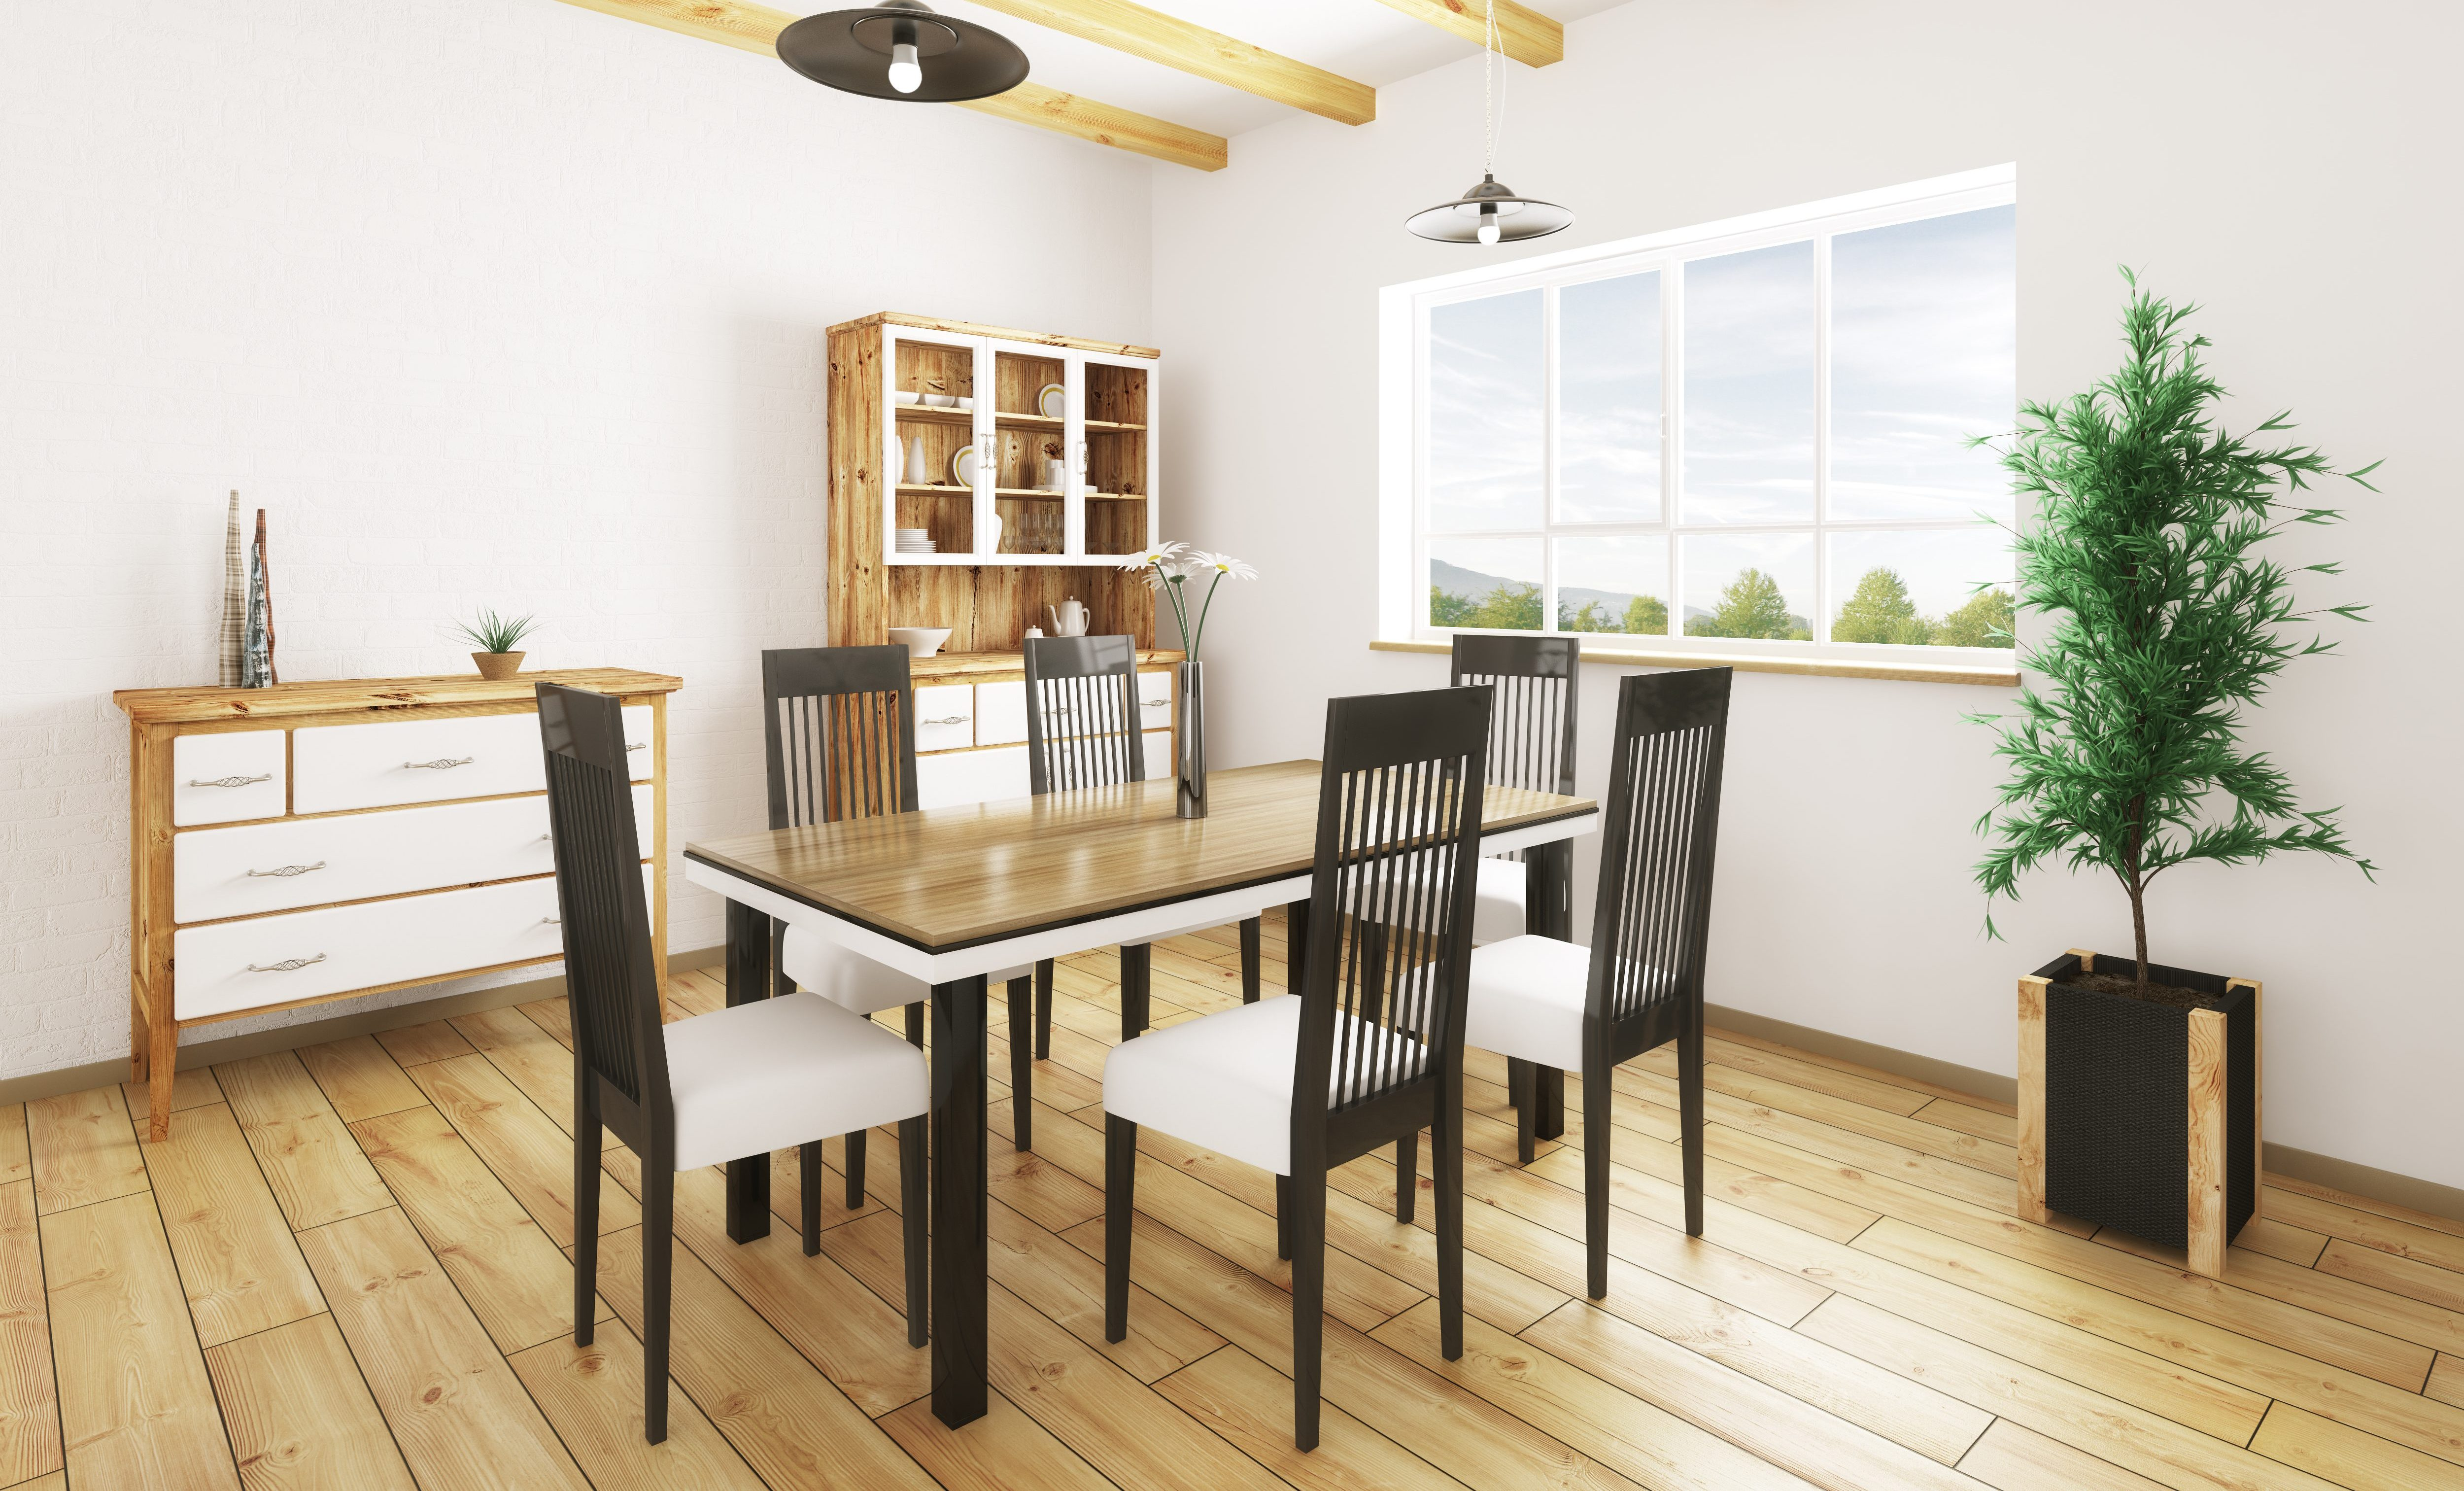 The Beauty And Usefulness Of Expandable Dining Tables In Small Spaces